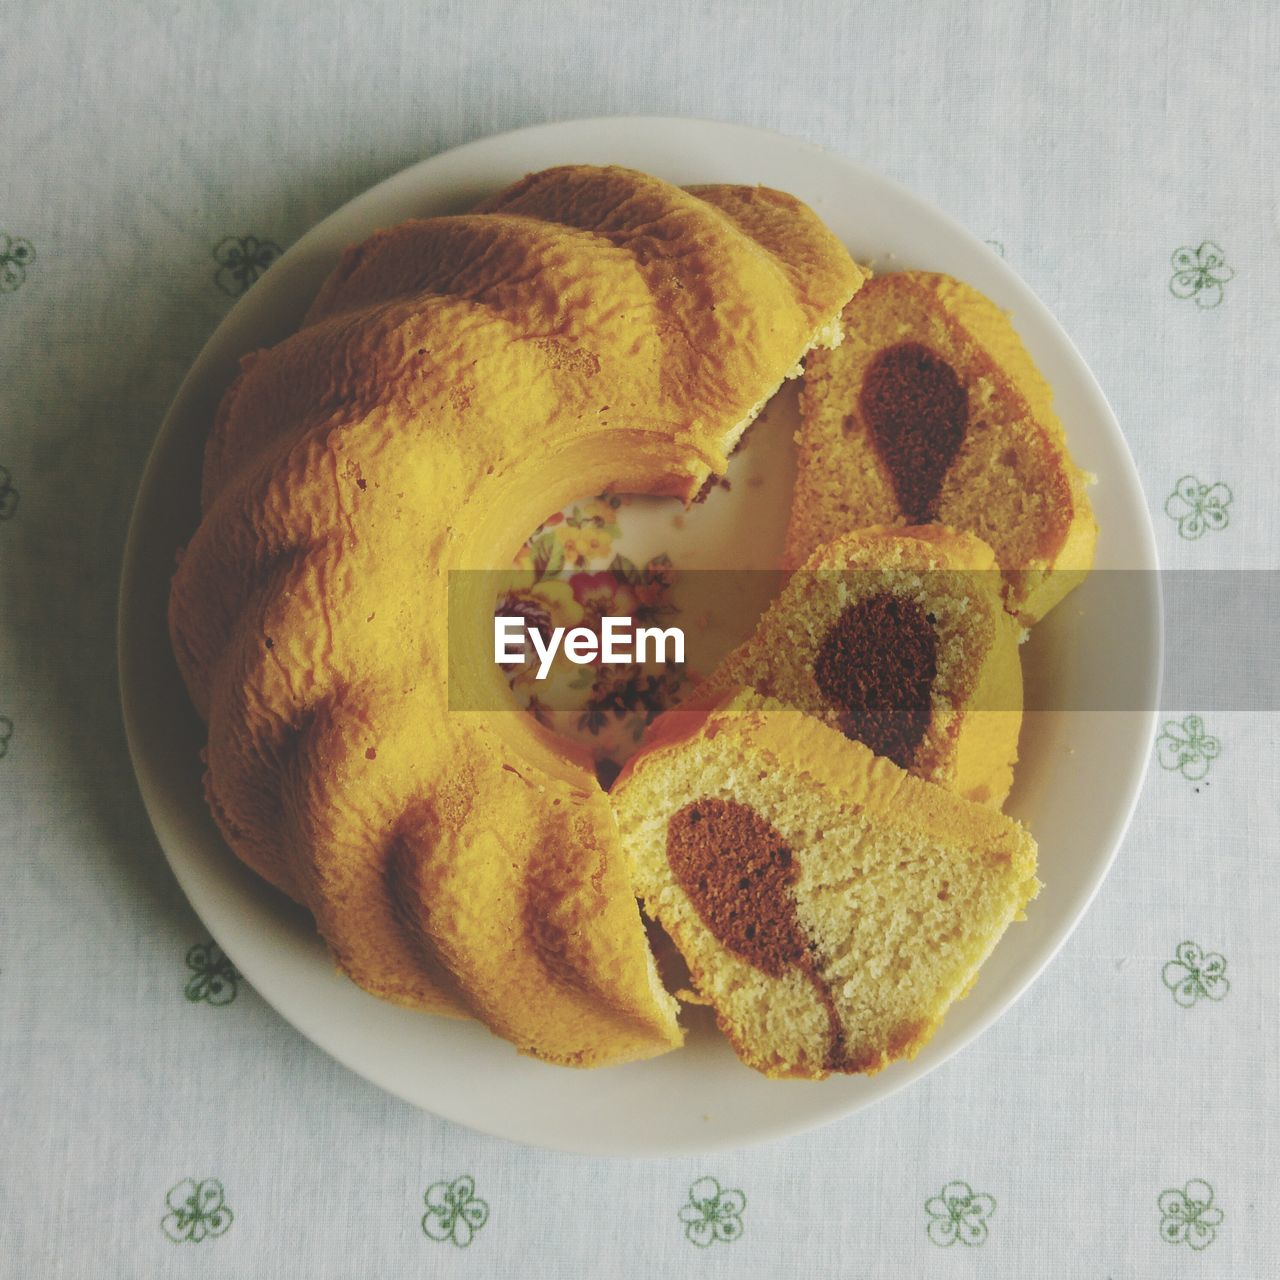 food, food and drink, freshness, ready-to-eat, indoors, no people, still life, plate, table, sweet food, baked, directly above, indulgence, close-up, high angle view, dessert, sweet, temptation, bread, cookie, snack, breakfast